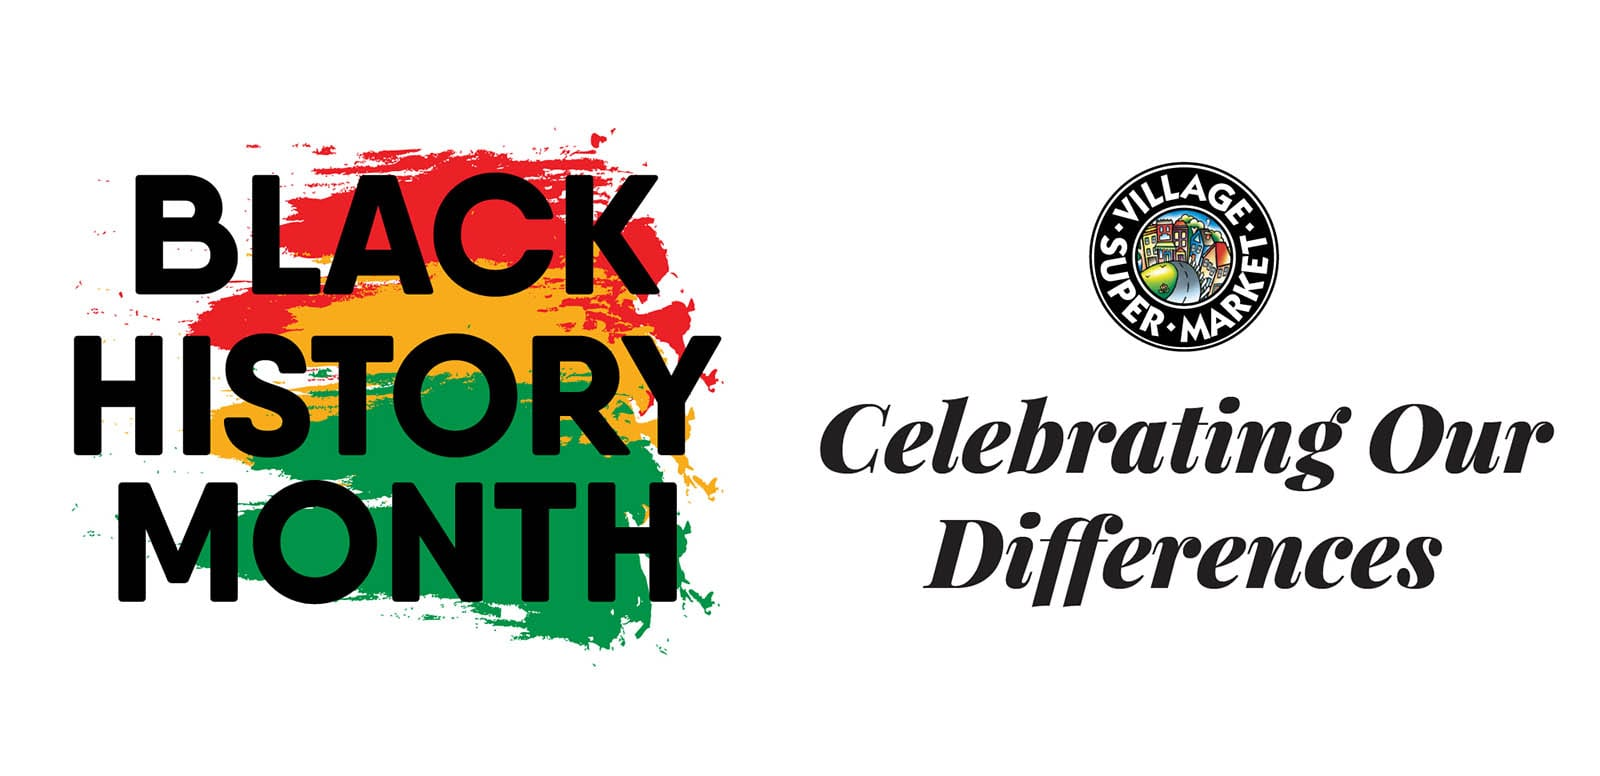 Celebrating Our Differences: Black History Month